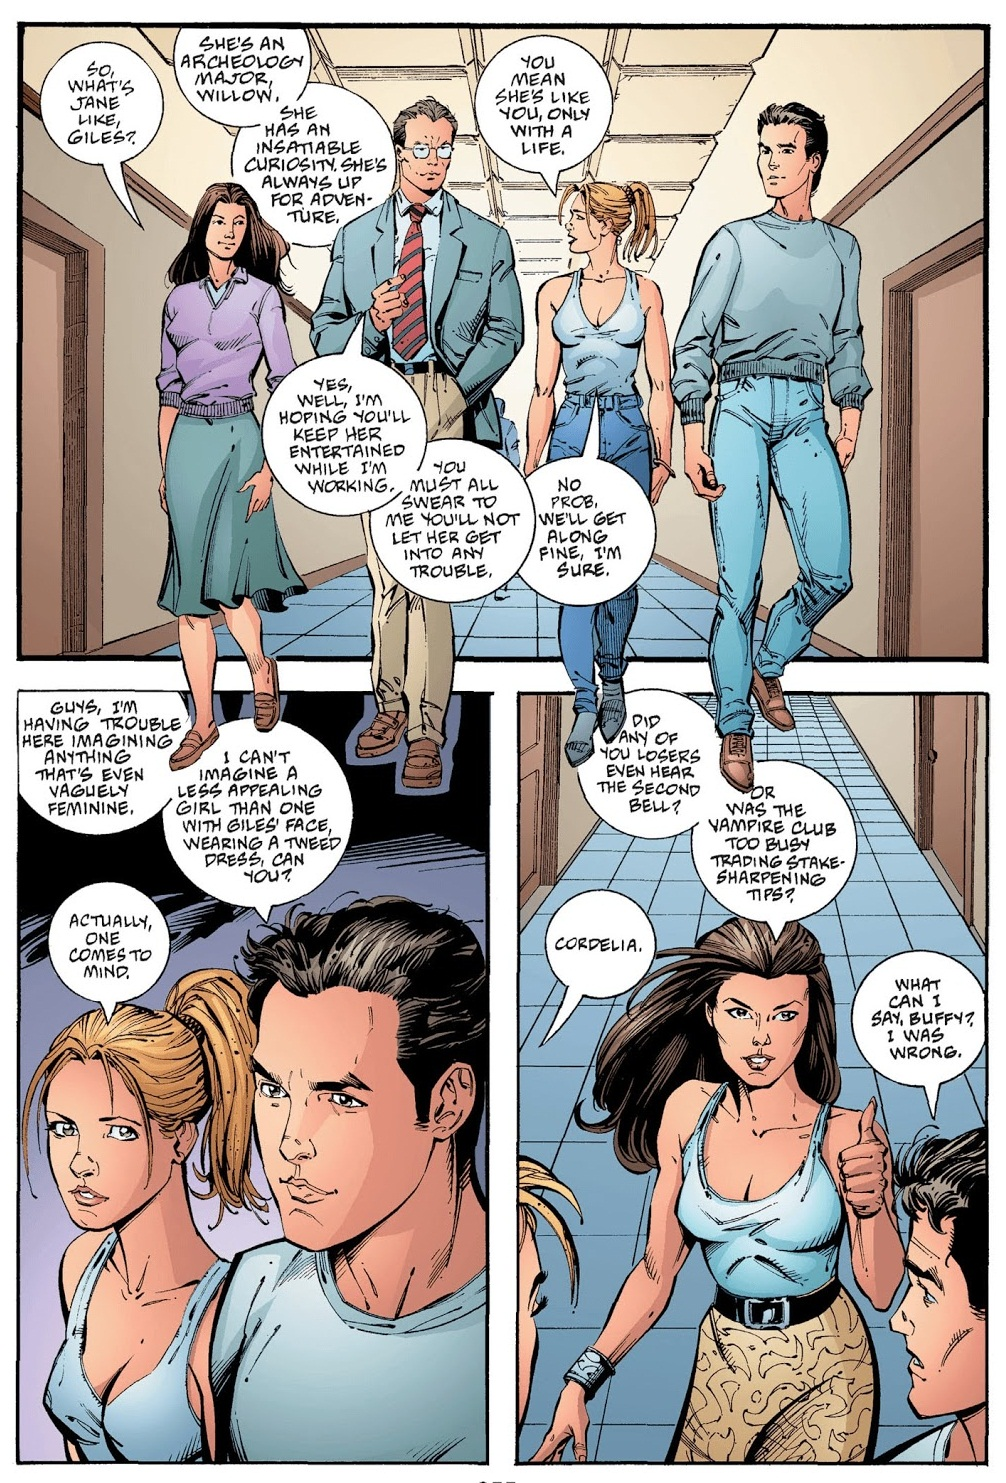 Buffy the Vampire Slayer The Dust Waltz review